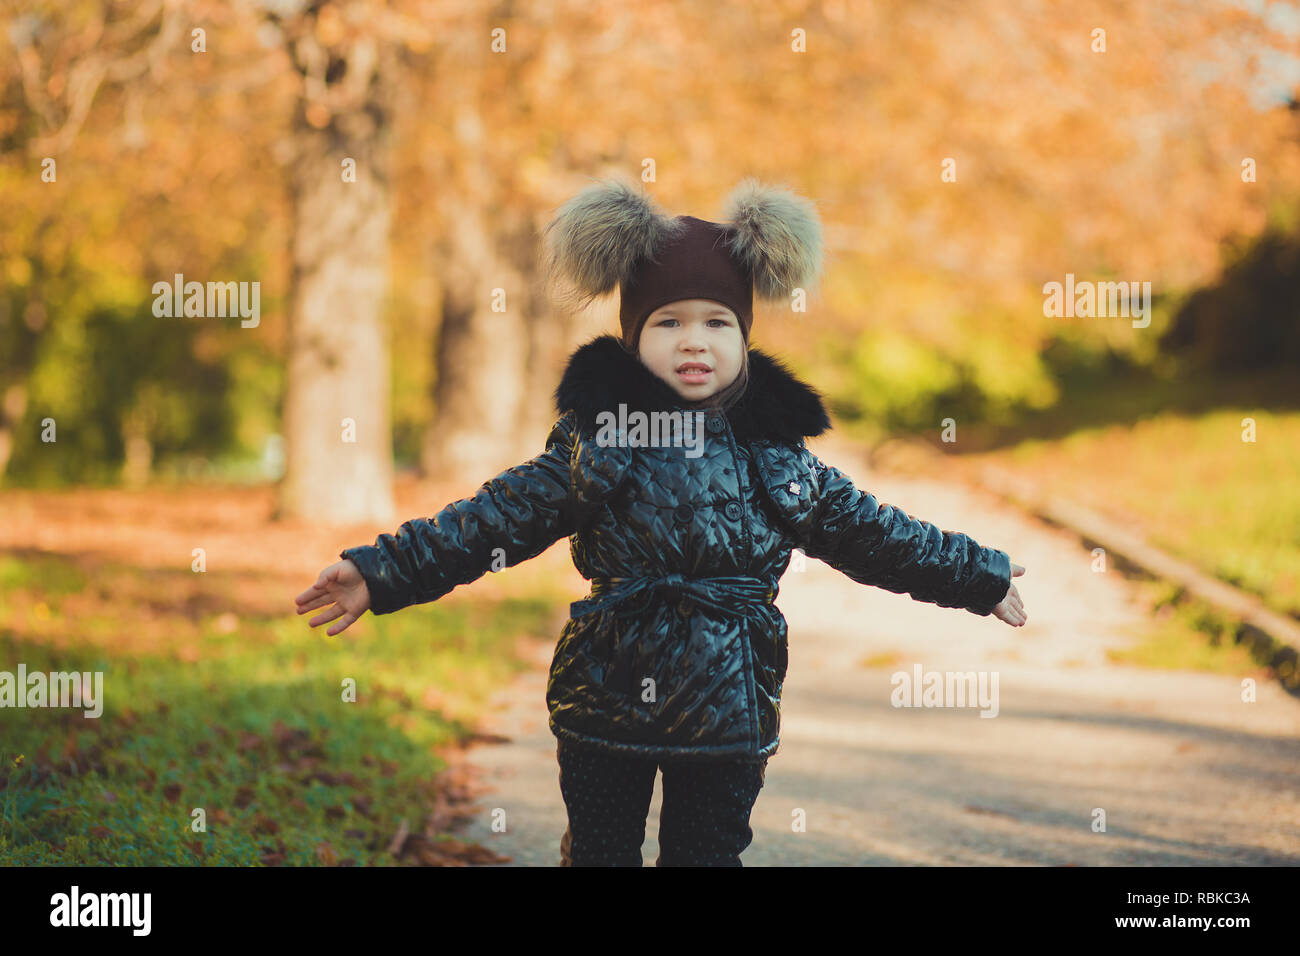 Dolly pin-up toothsome young girl wearing fashion stylish black coat jacket and awesome hat clothes posing in autumn spring park weekend happyly smili - Stock Image